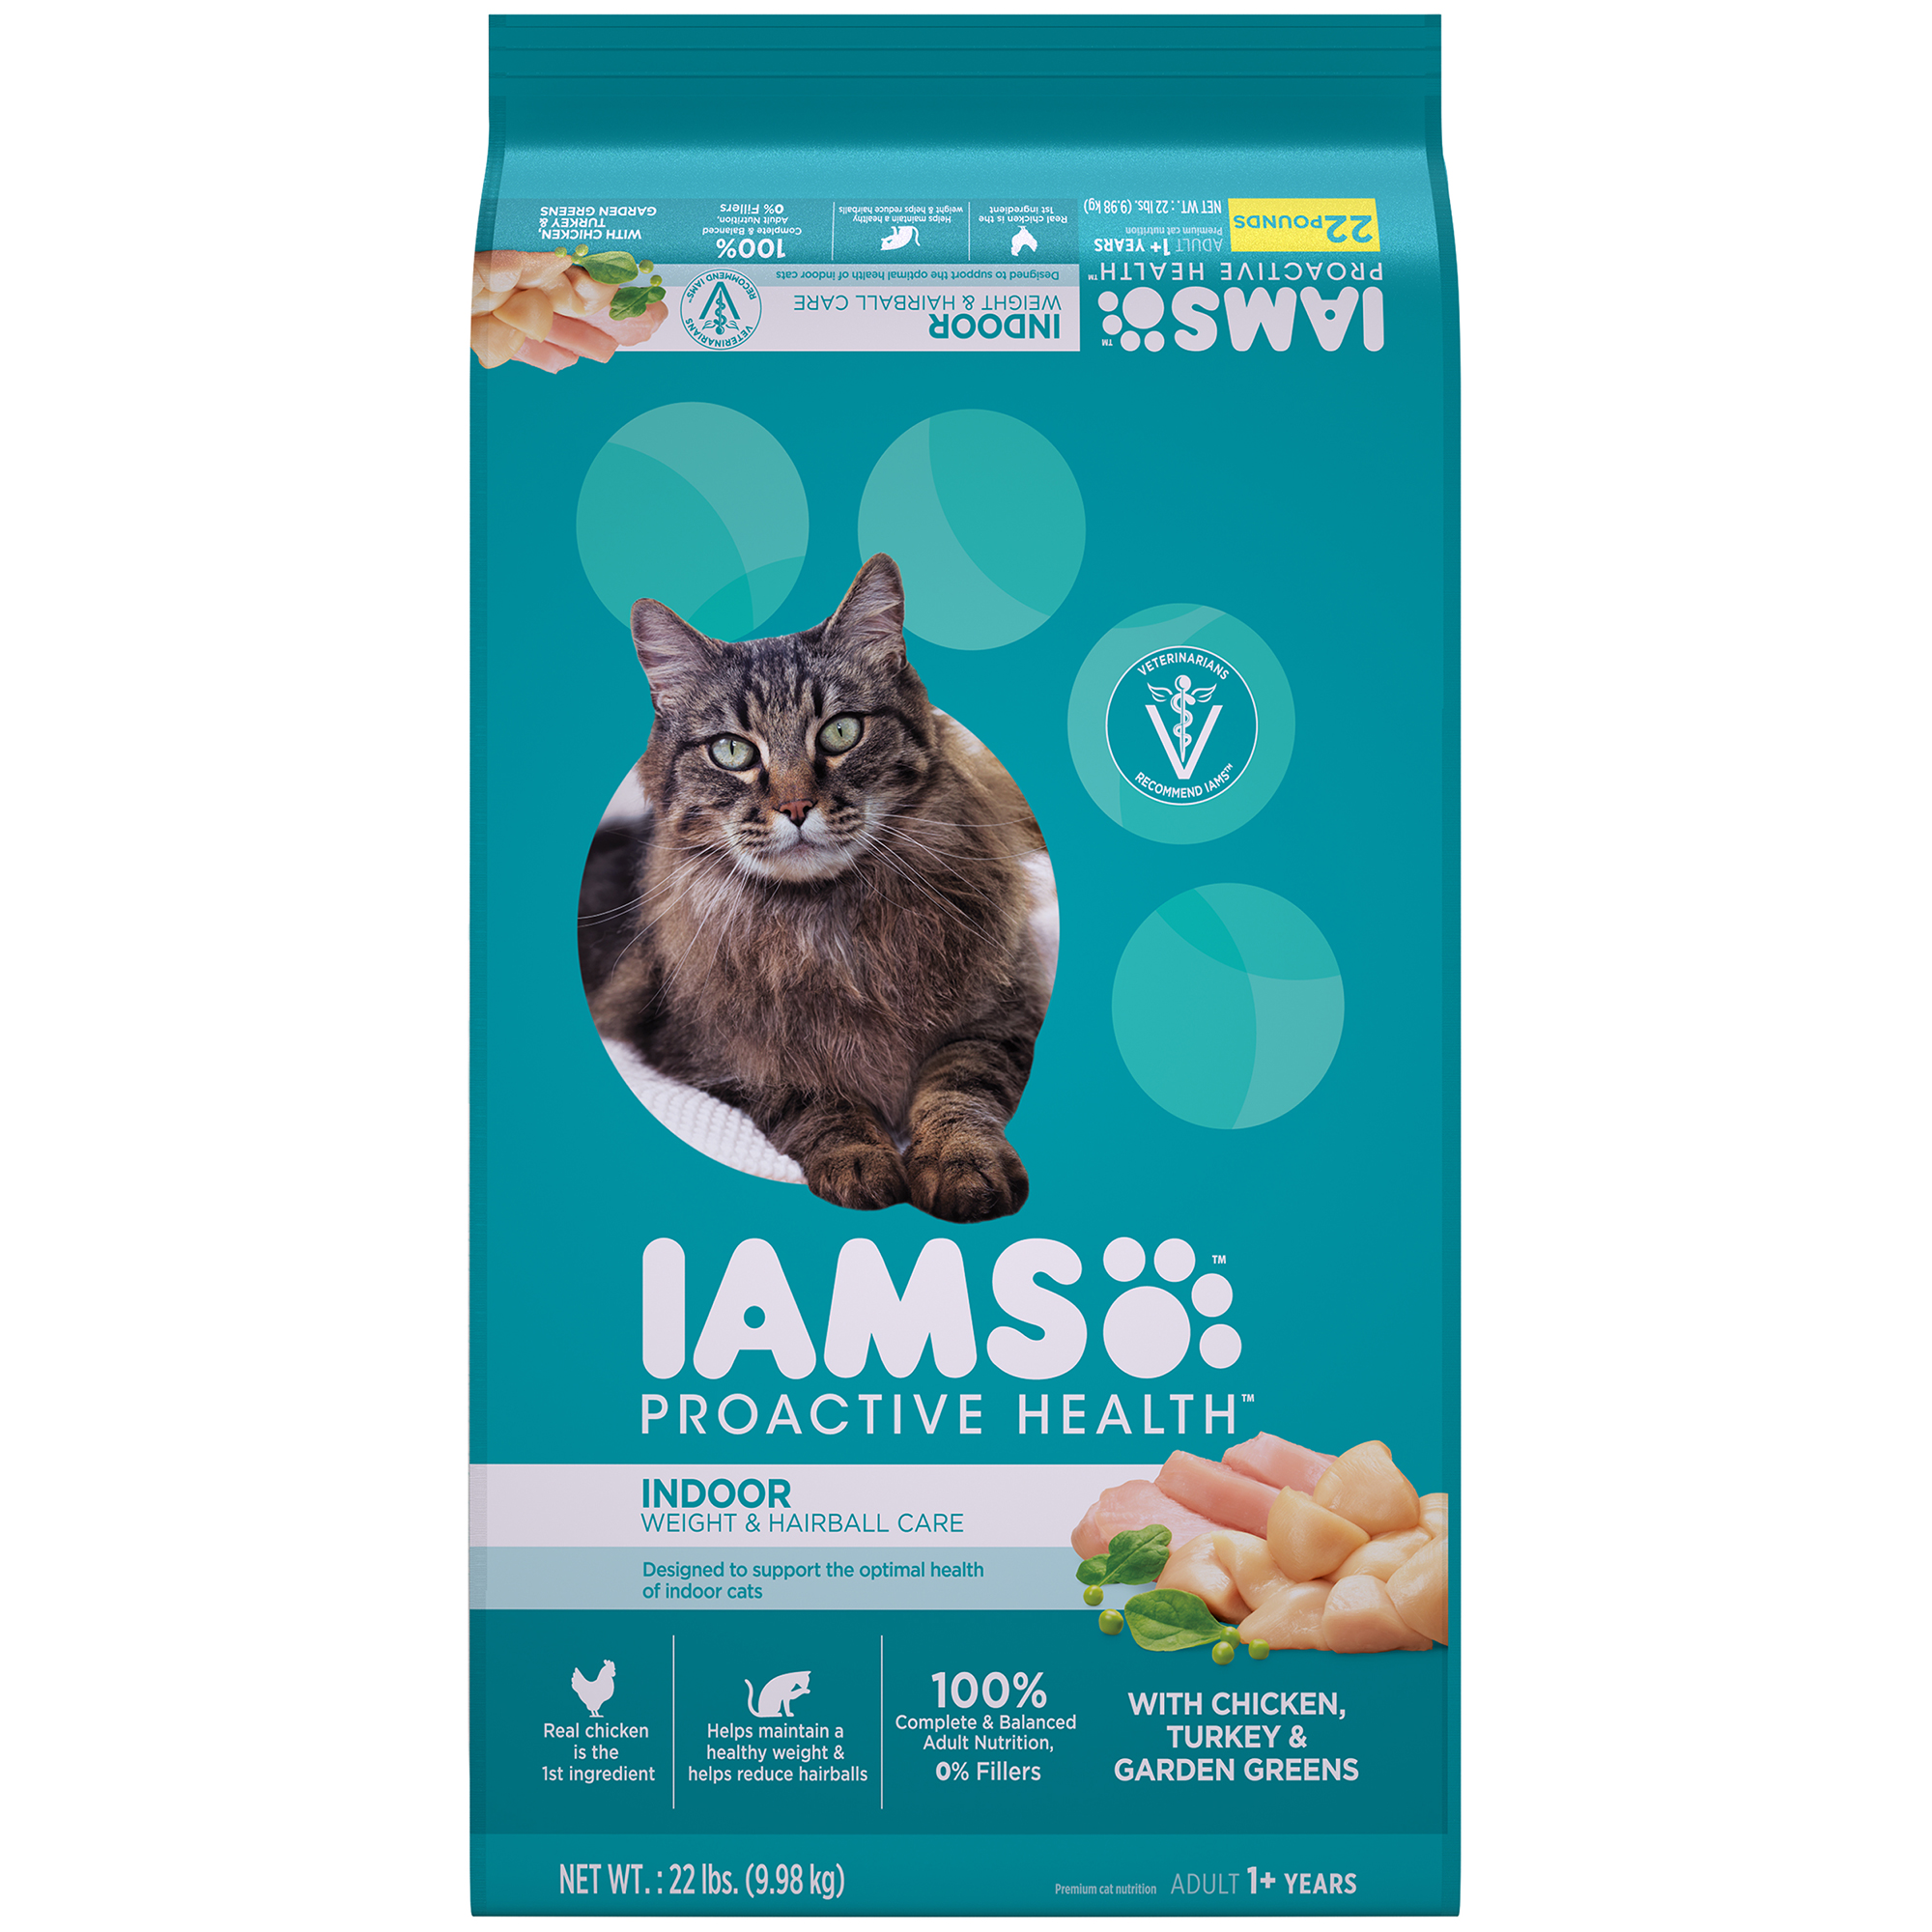 IAMS PROACTIVE HEALTH Adult Indoor Weight & Hairball Care Dry Cat Food with Chicken, Turkey, and Garden... by Mars Petcare